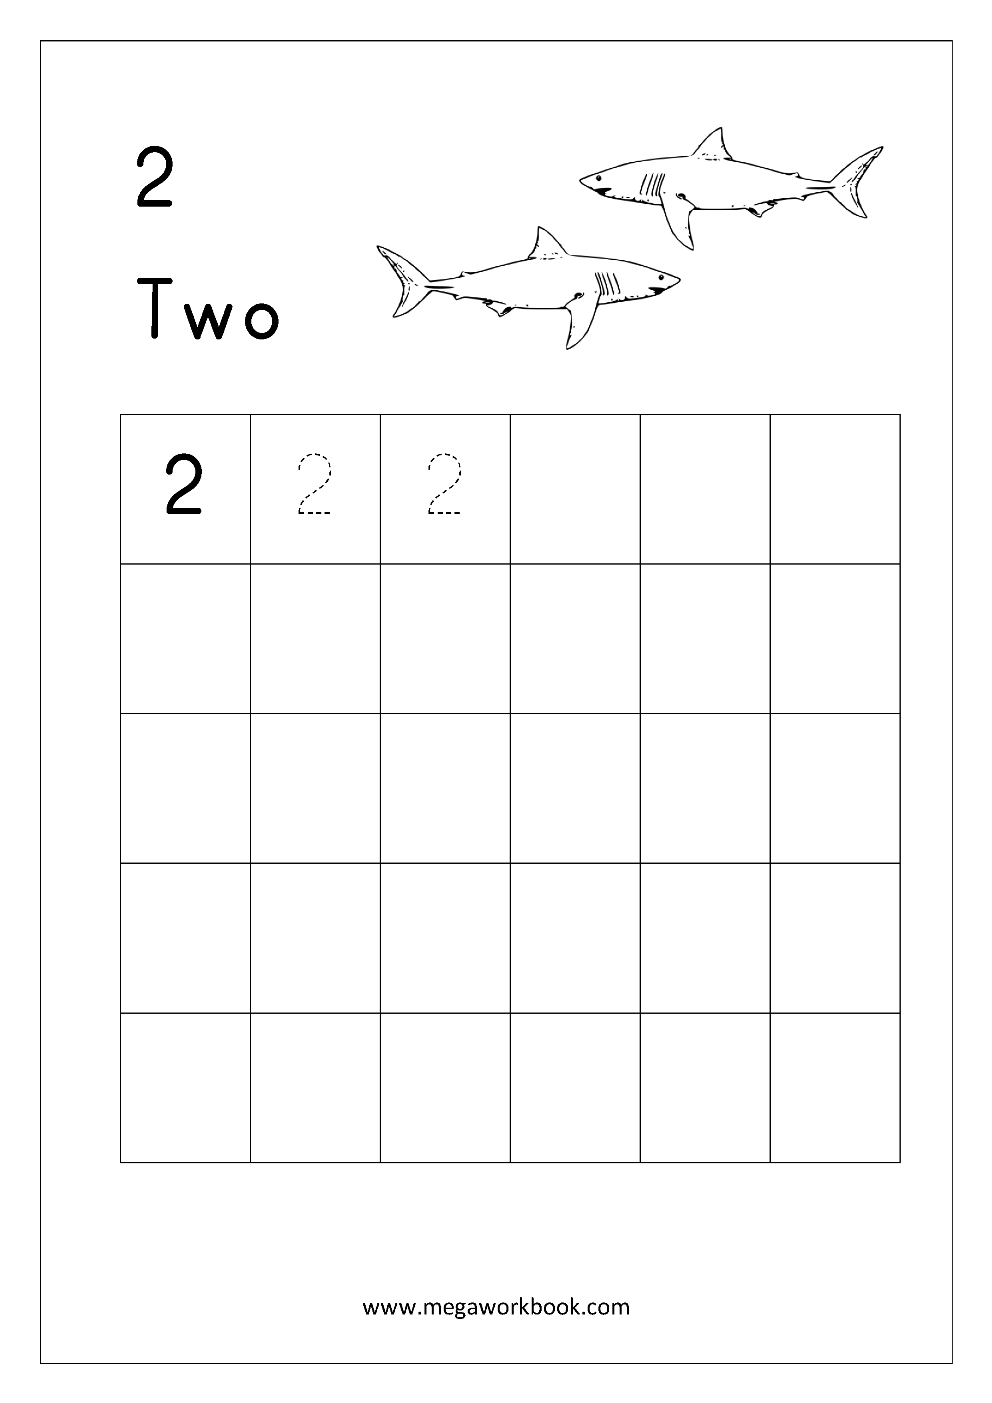 Free Math Worksheets Number Tracing And Writing 1 10 Number